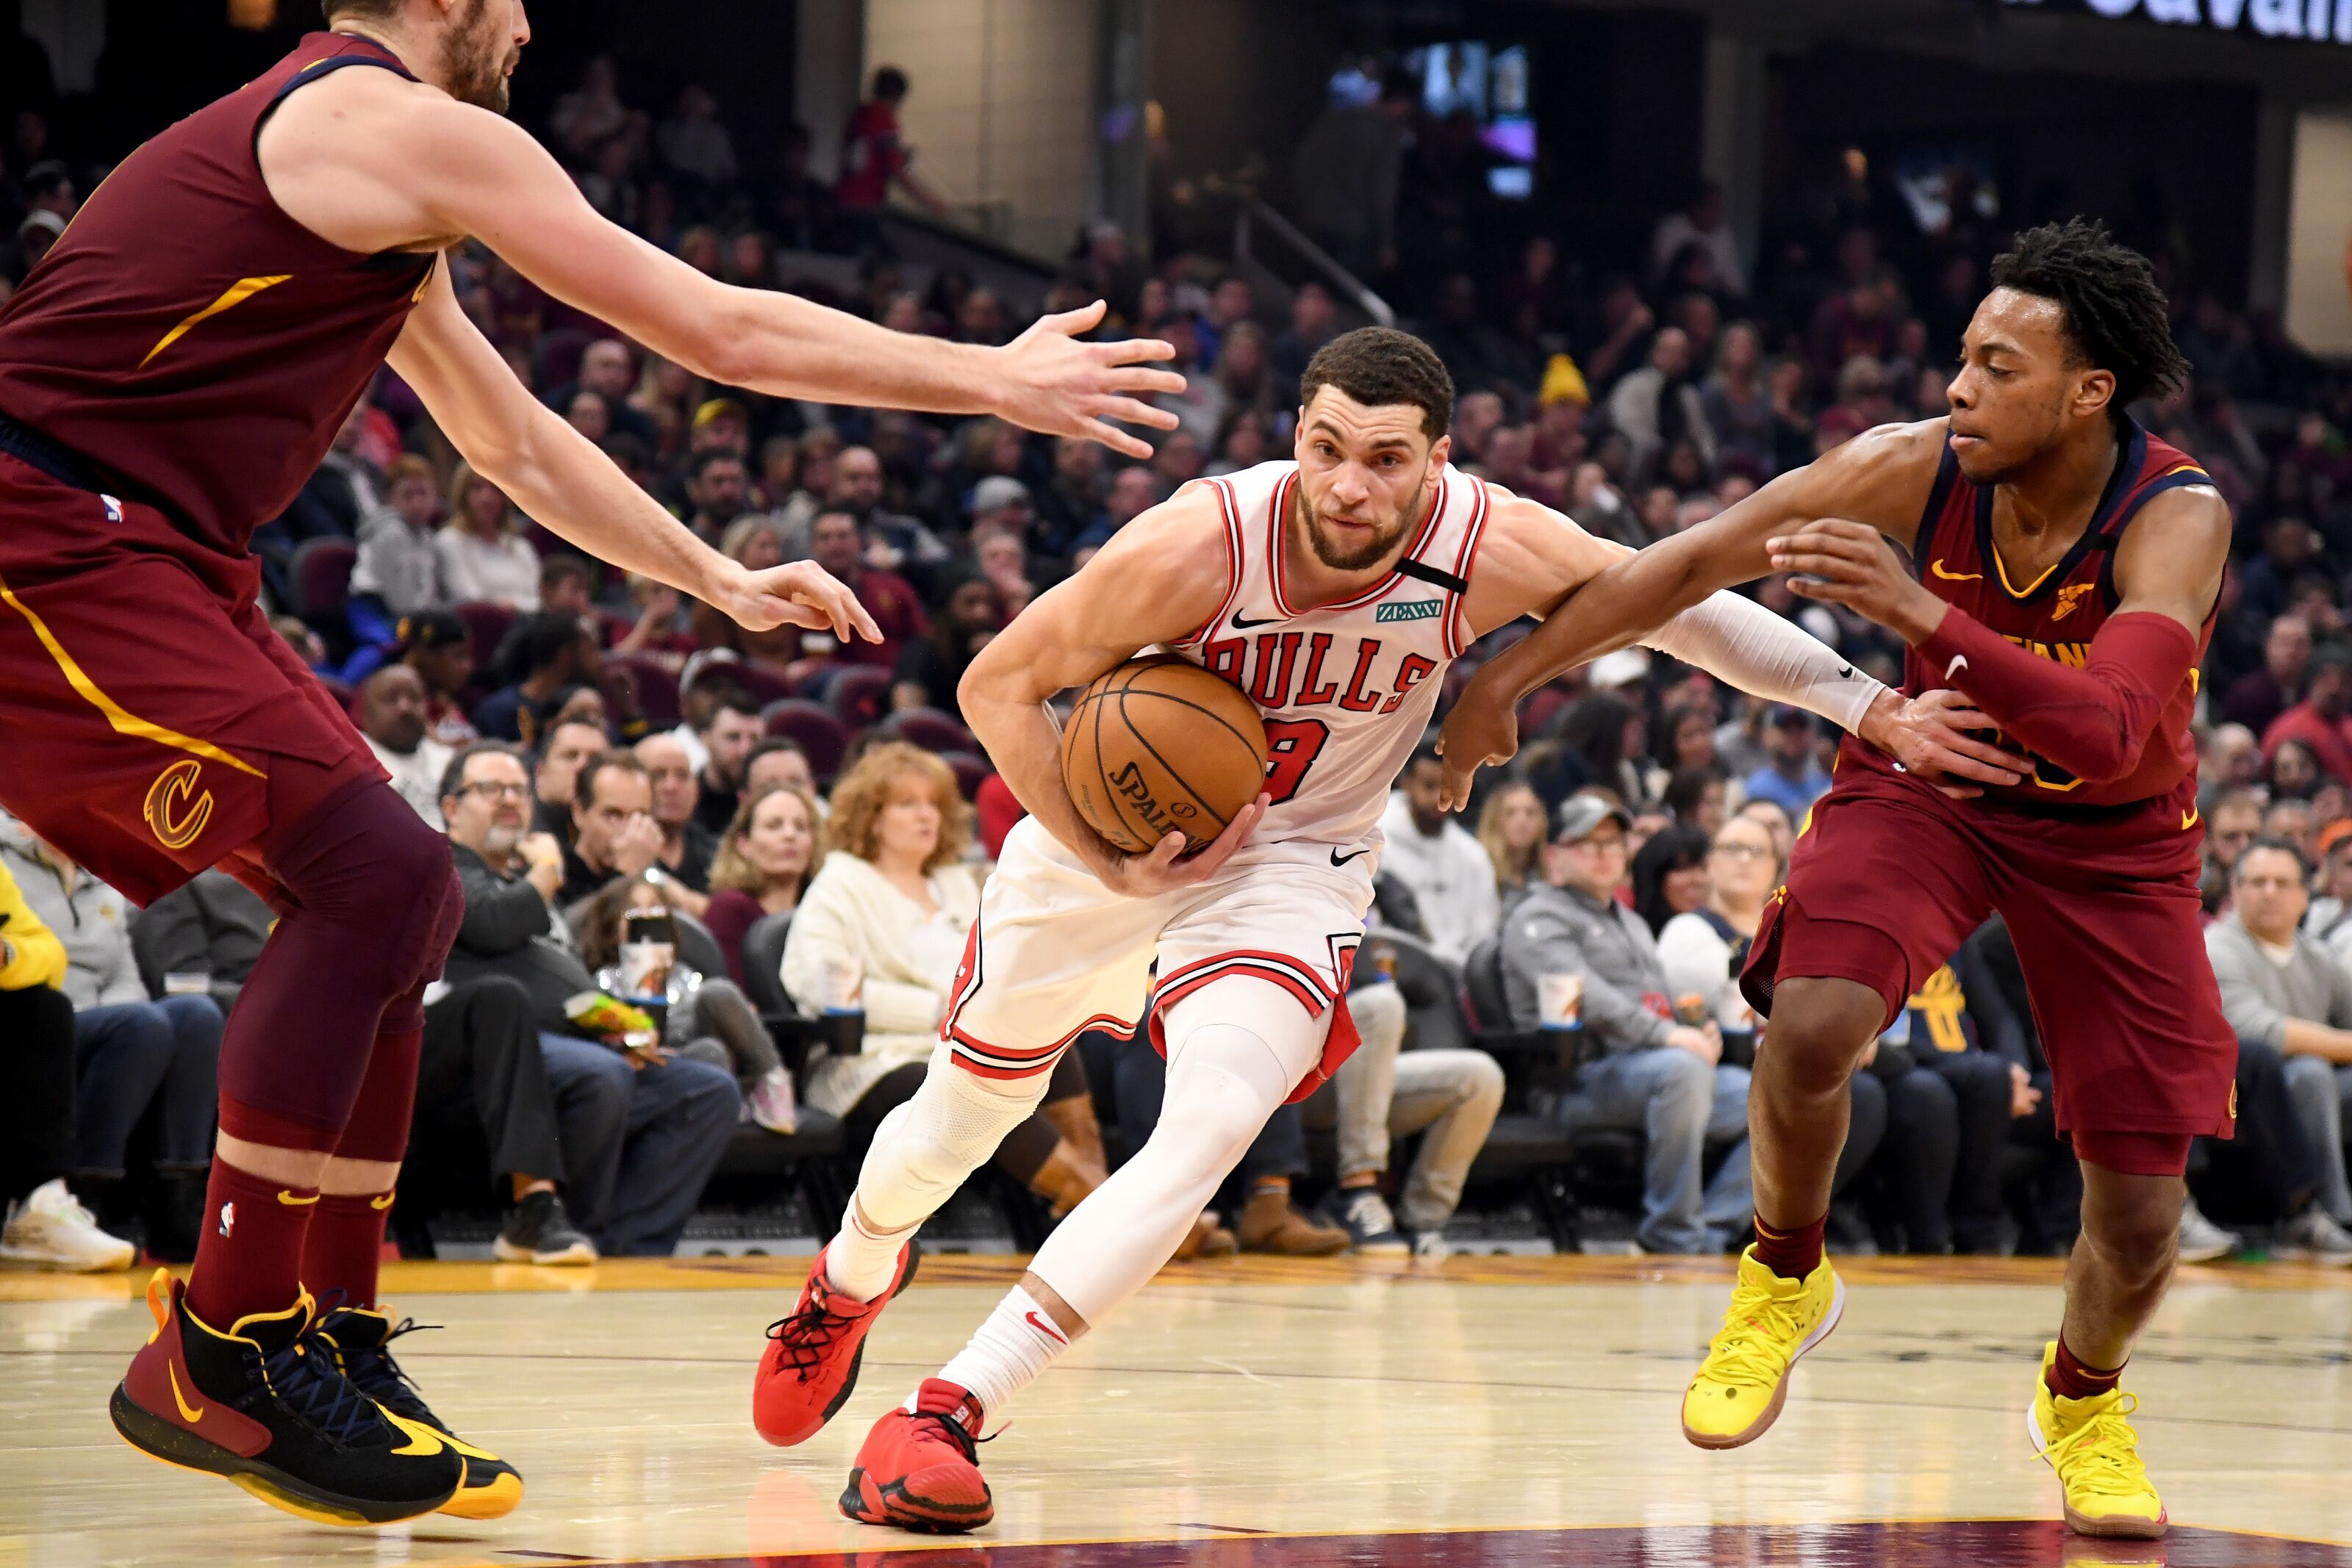 Chicago Bulls: Zach LaVine has an opportunity to make a statement